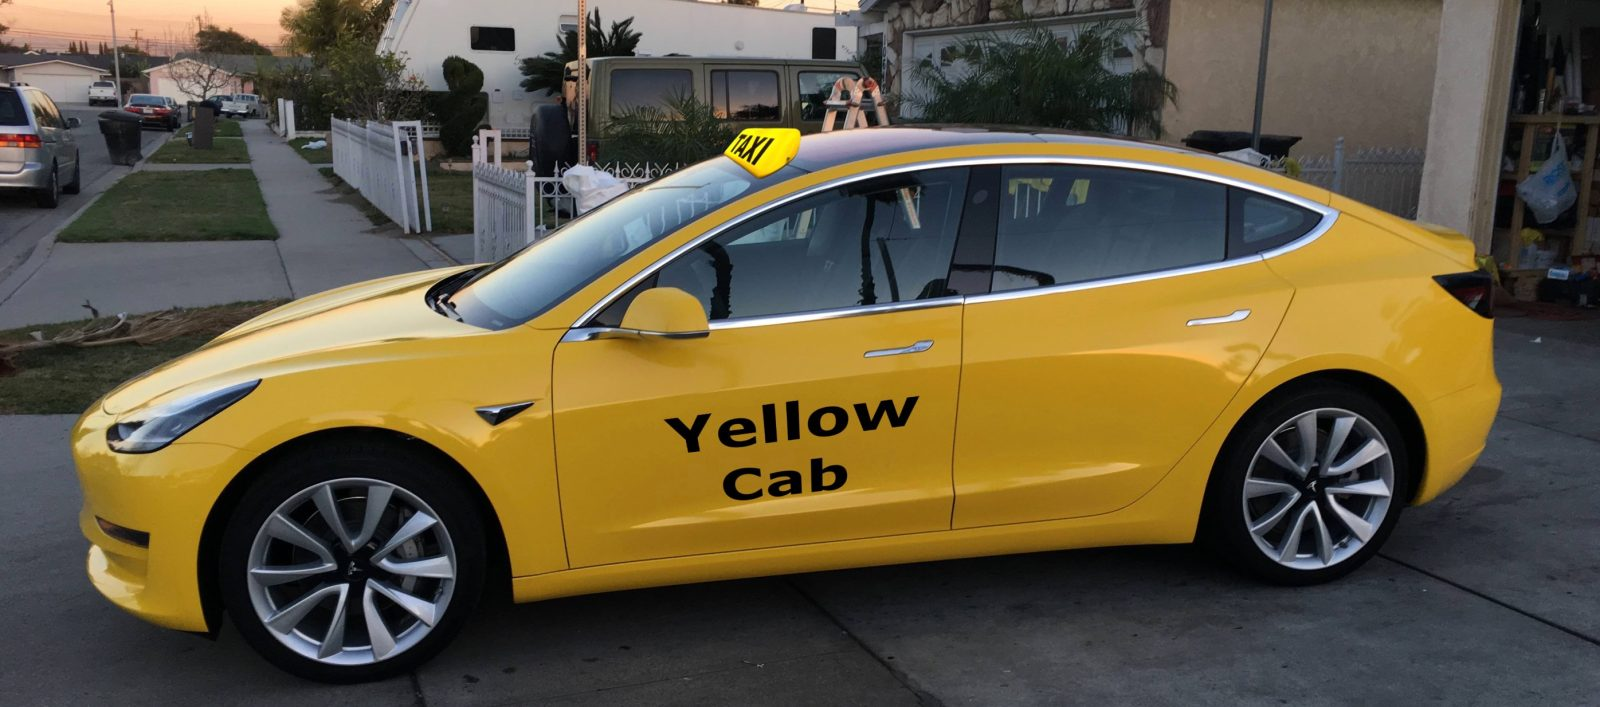 Tesla Model 3 becomes first electric car approved as NYC yellow cab